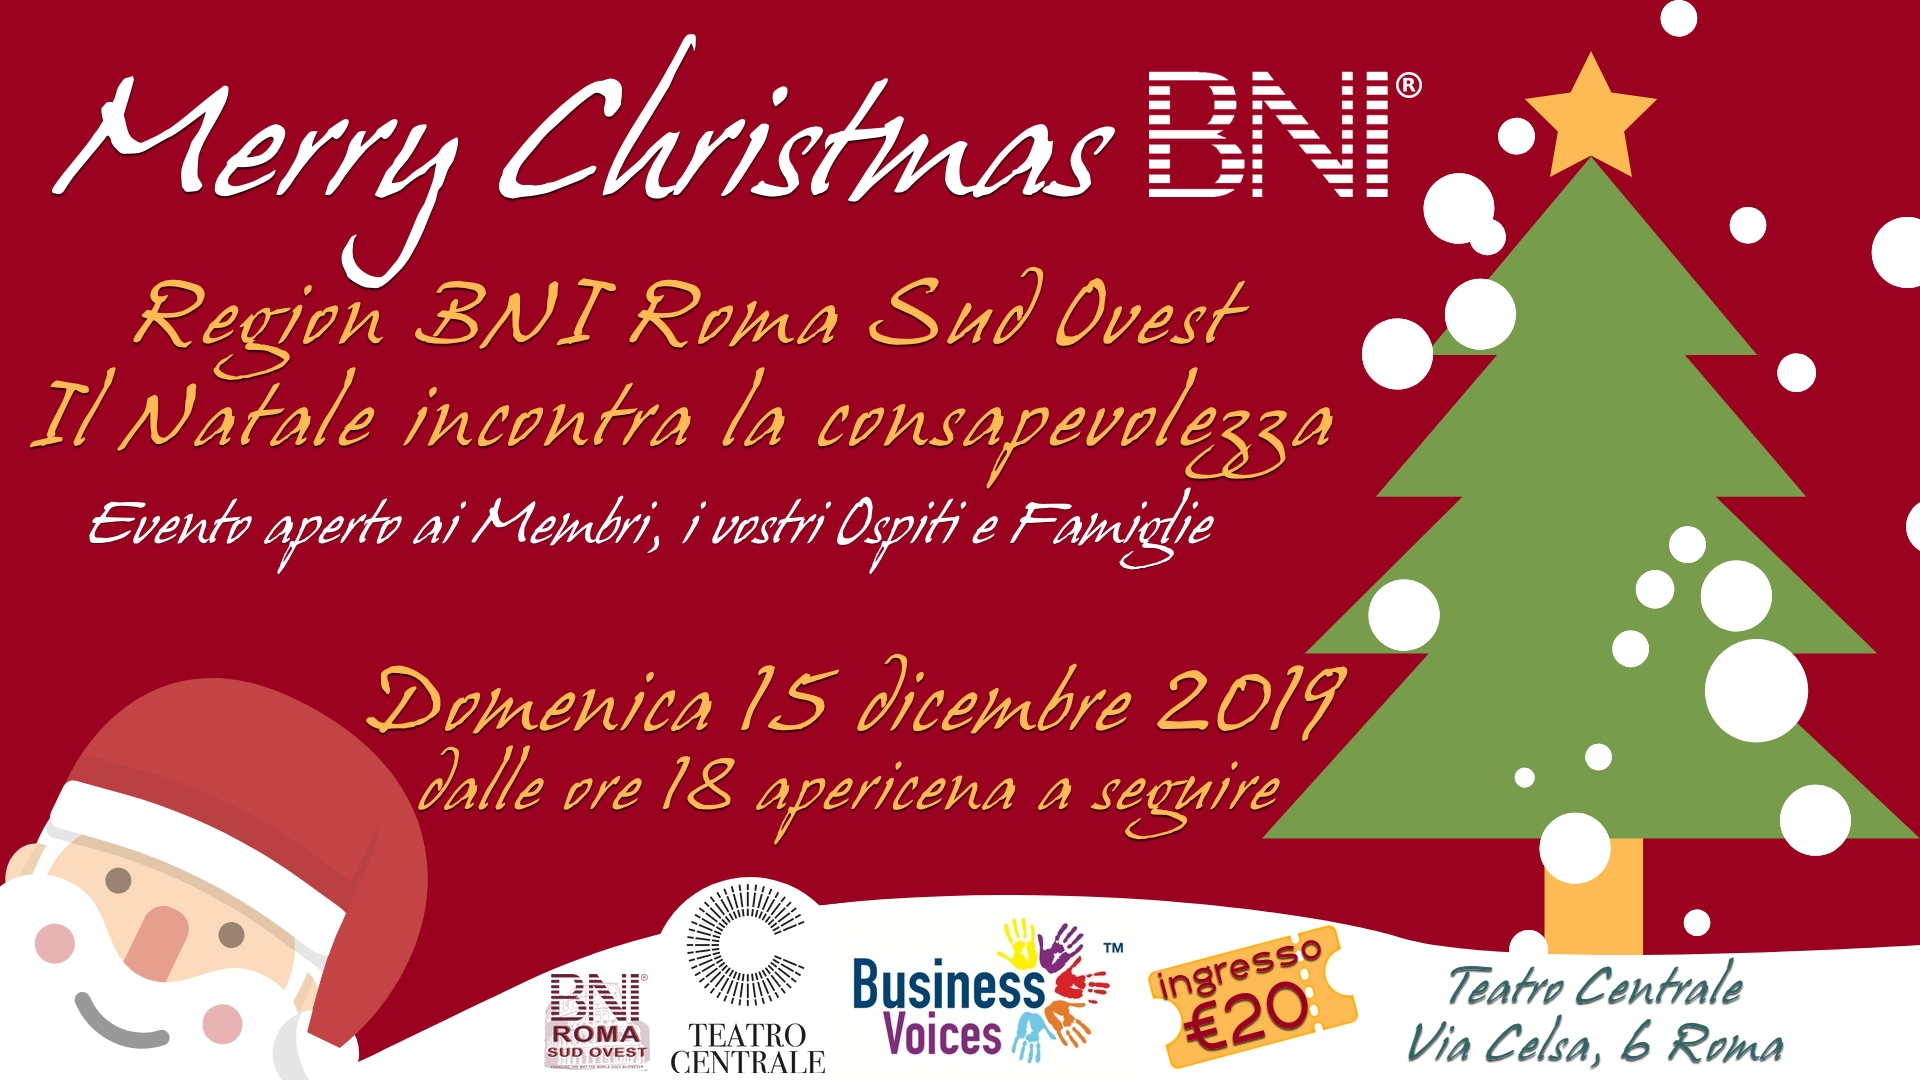 Merry Christmas BNI Roma Sud Ovest - DICEMBRE 2019